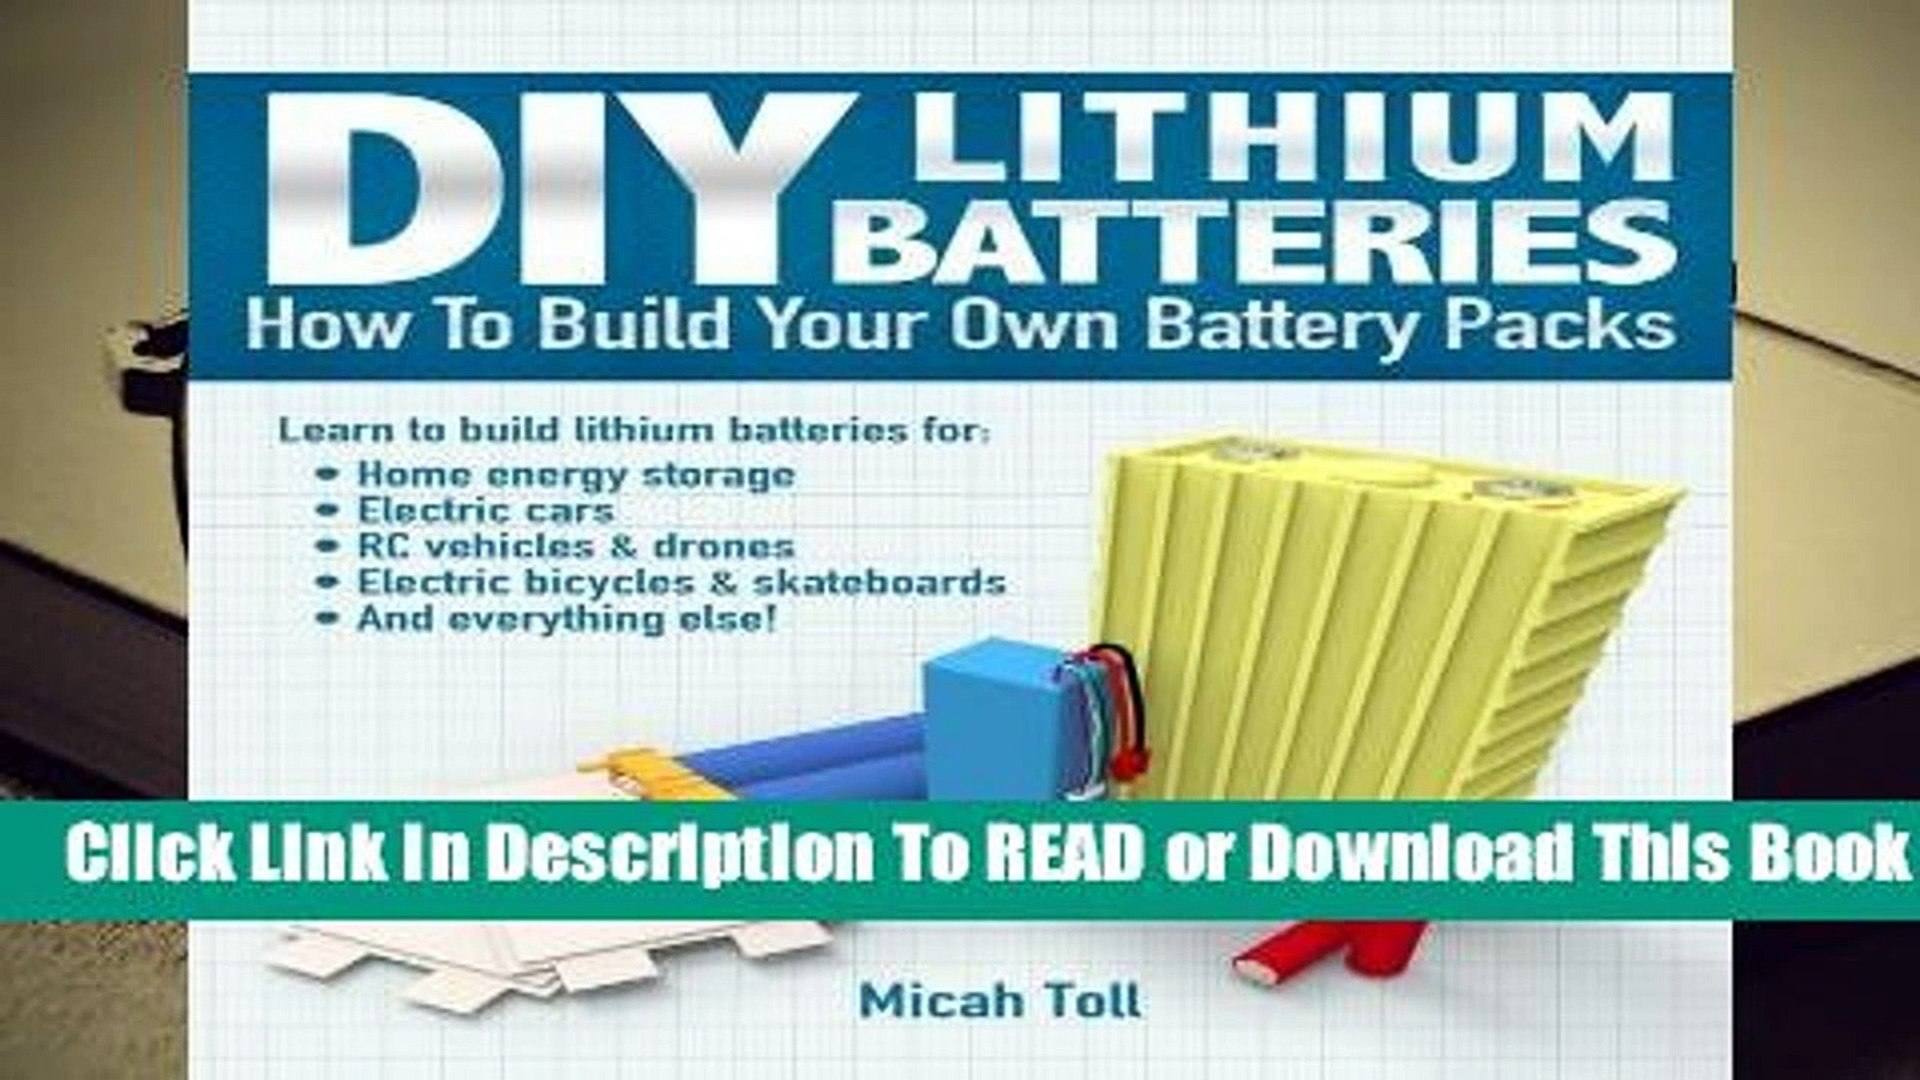 [Read] DIY Lithium Batteries: How to Build Your Own Battery Packs  For Full